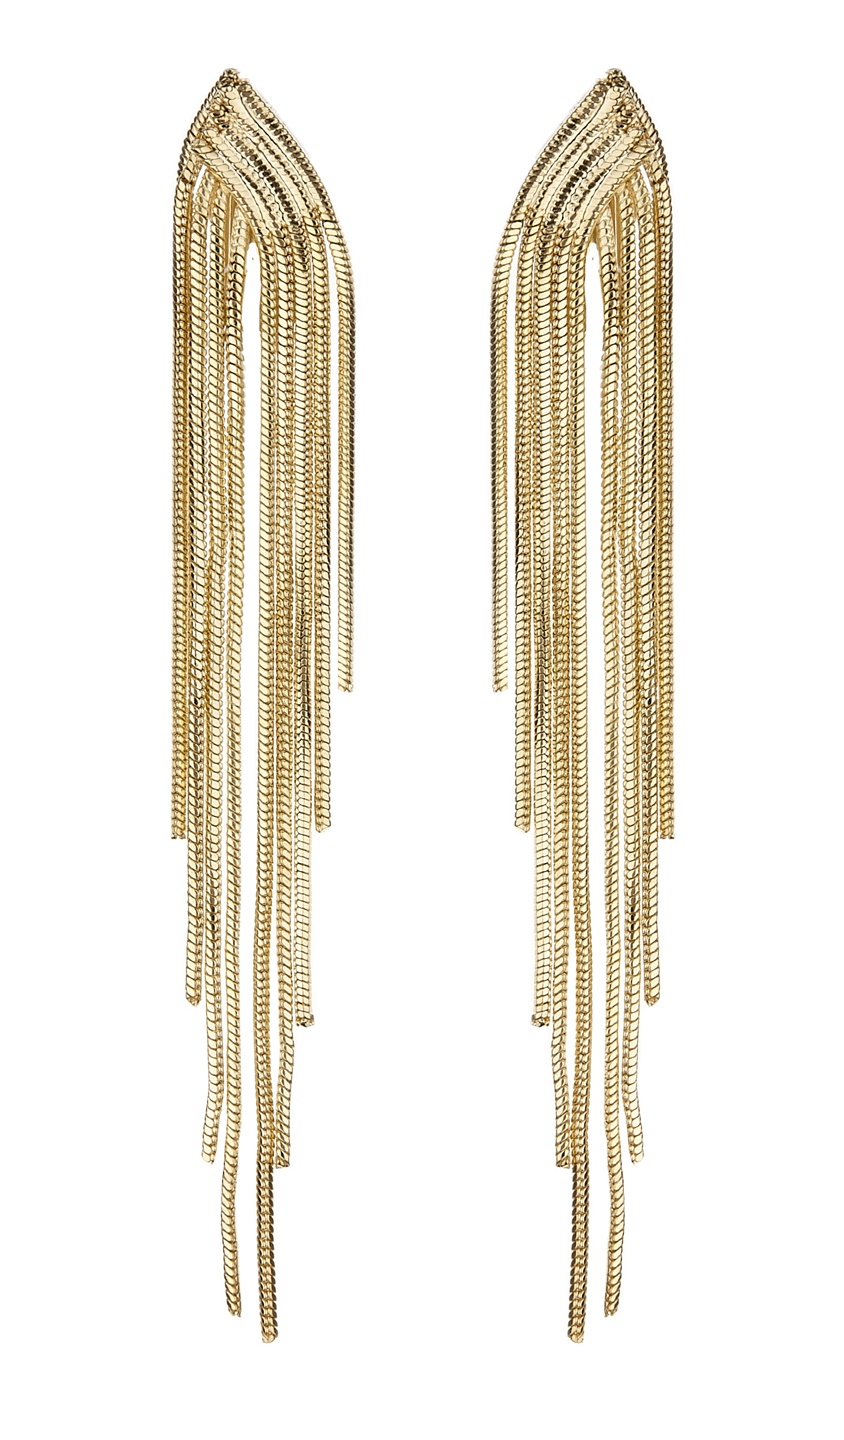 Clip On Earrings - Bracha G - gold earring with strands